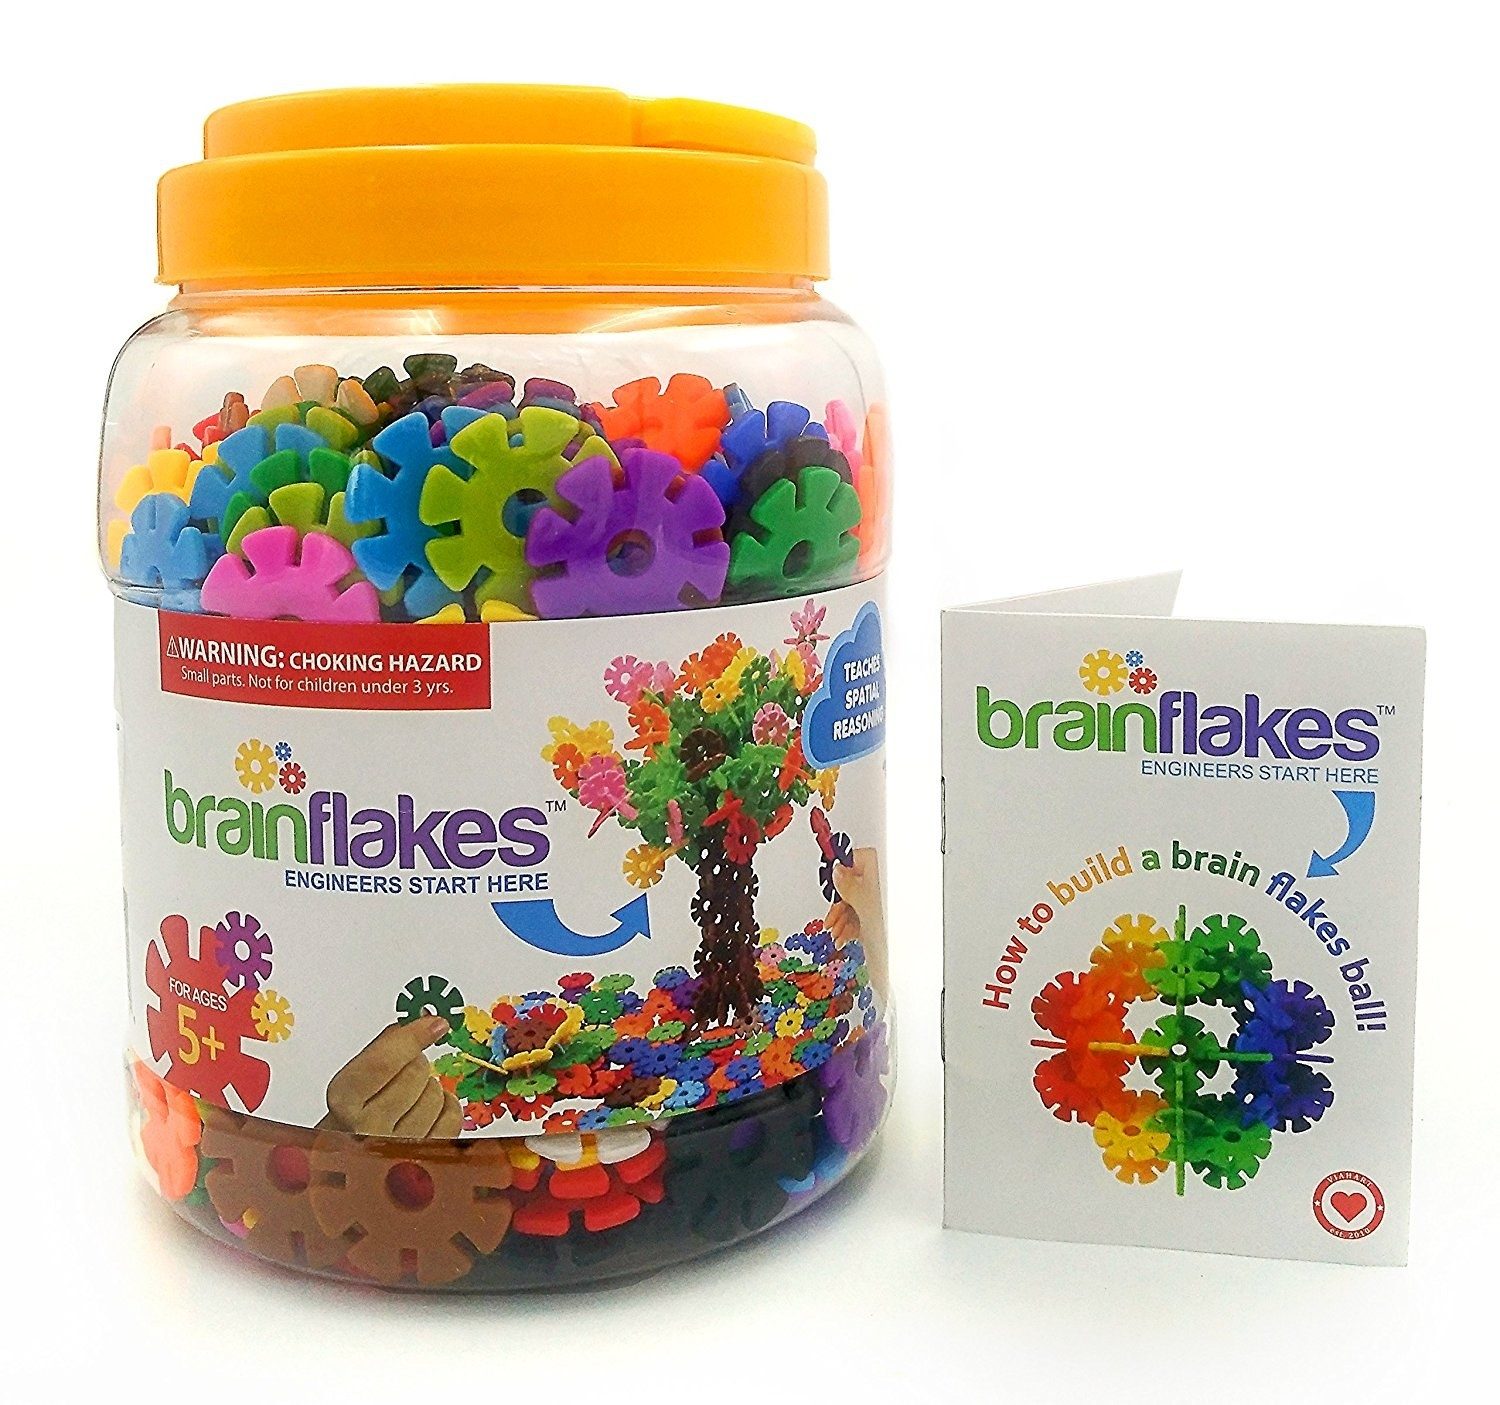 3 A 500 Piece Brain Flakes Interlocking Disc Set For Little Creators